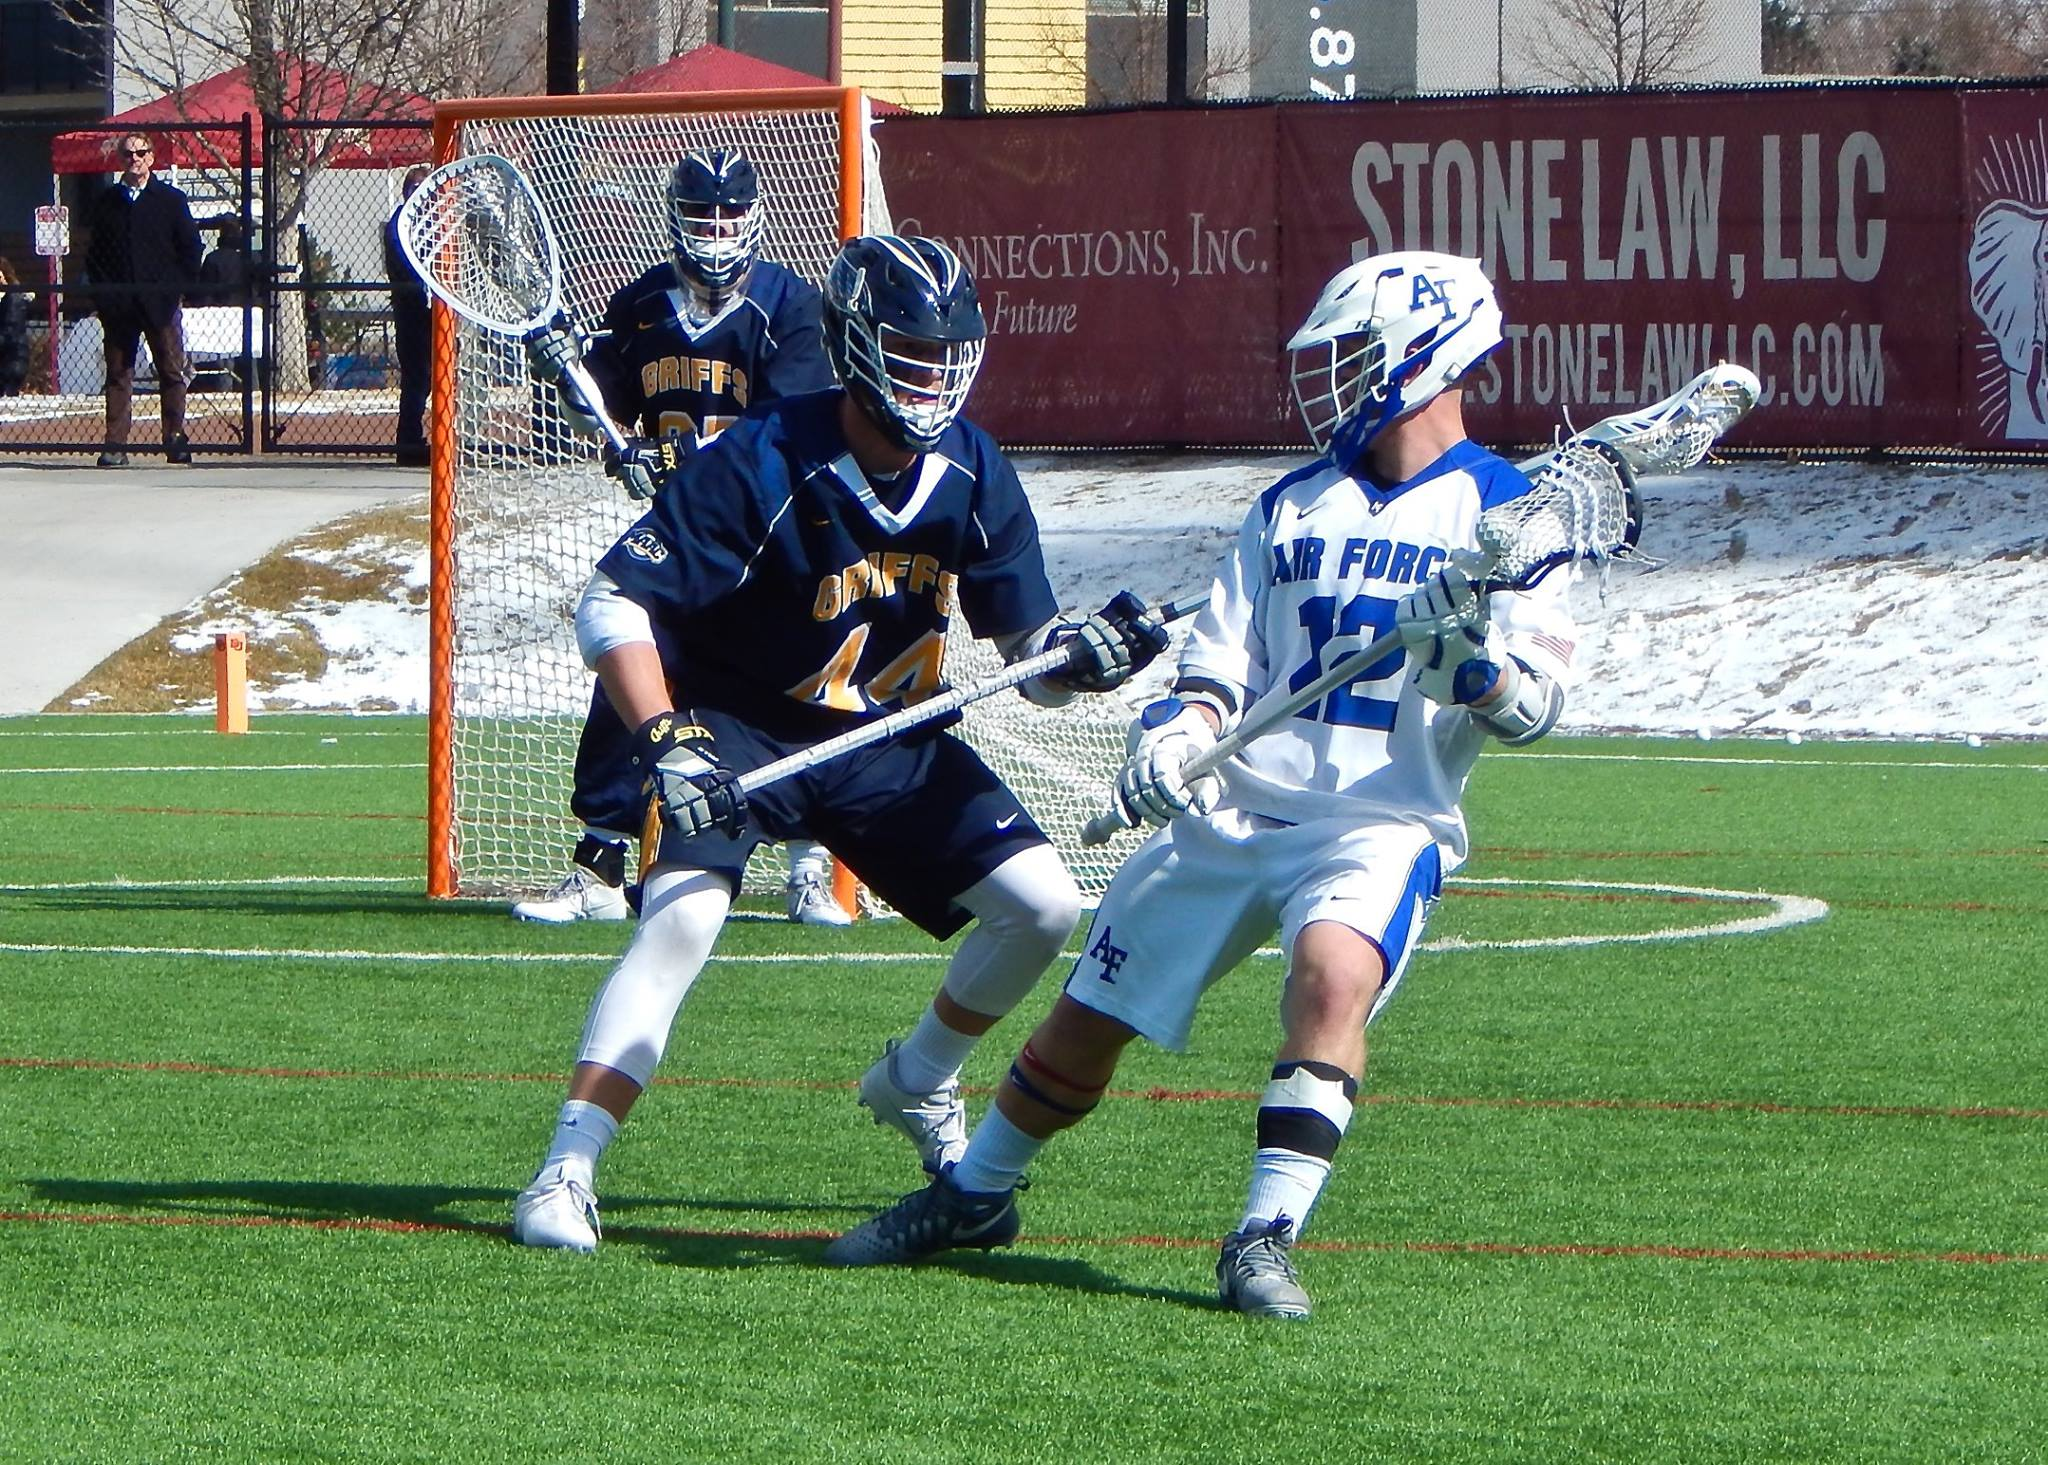 Air Force vs. Canisius College on February 25, 2017. (Photo credit: Ian Neadle)